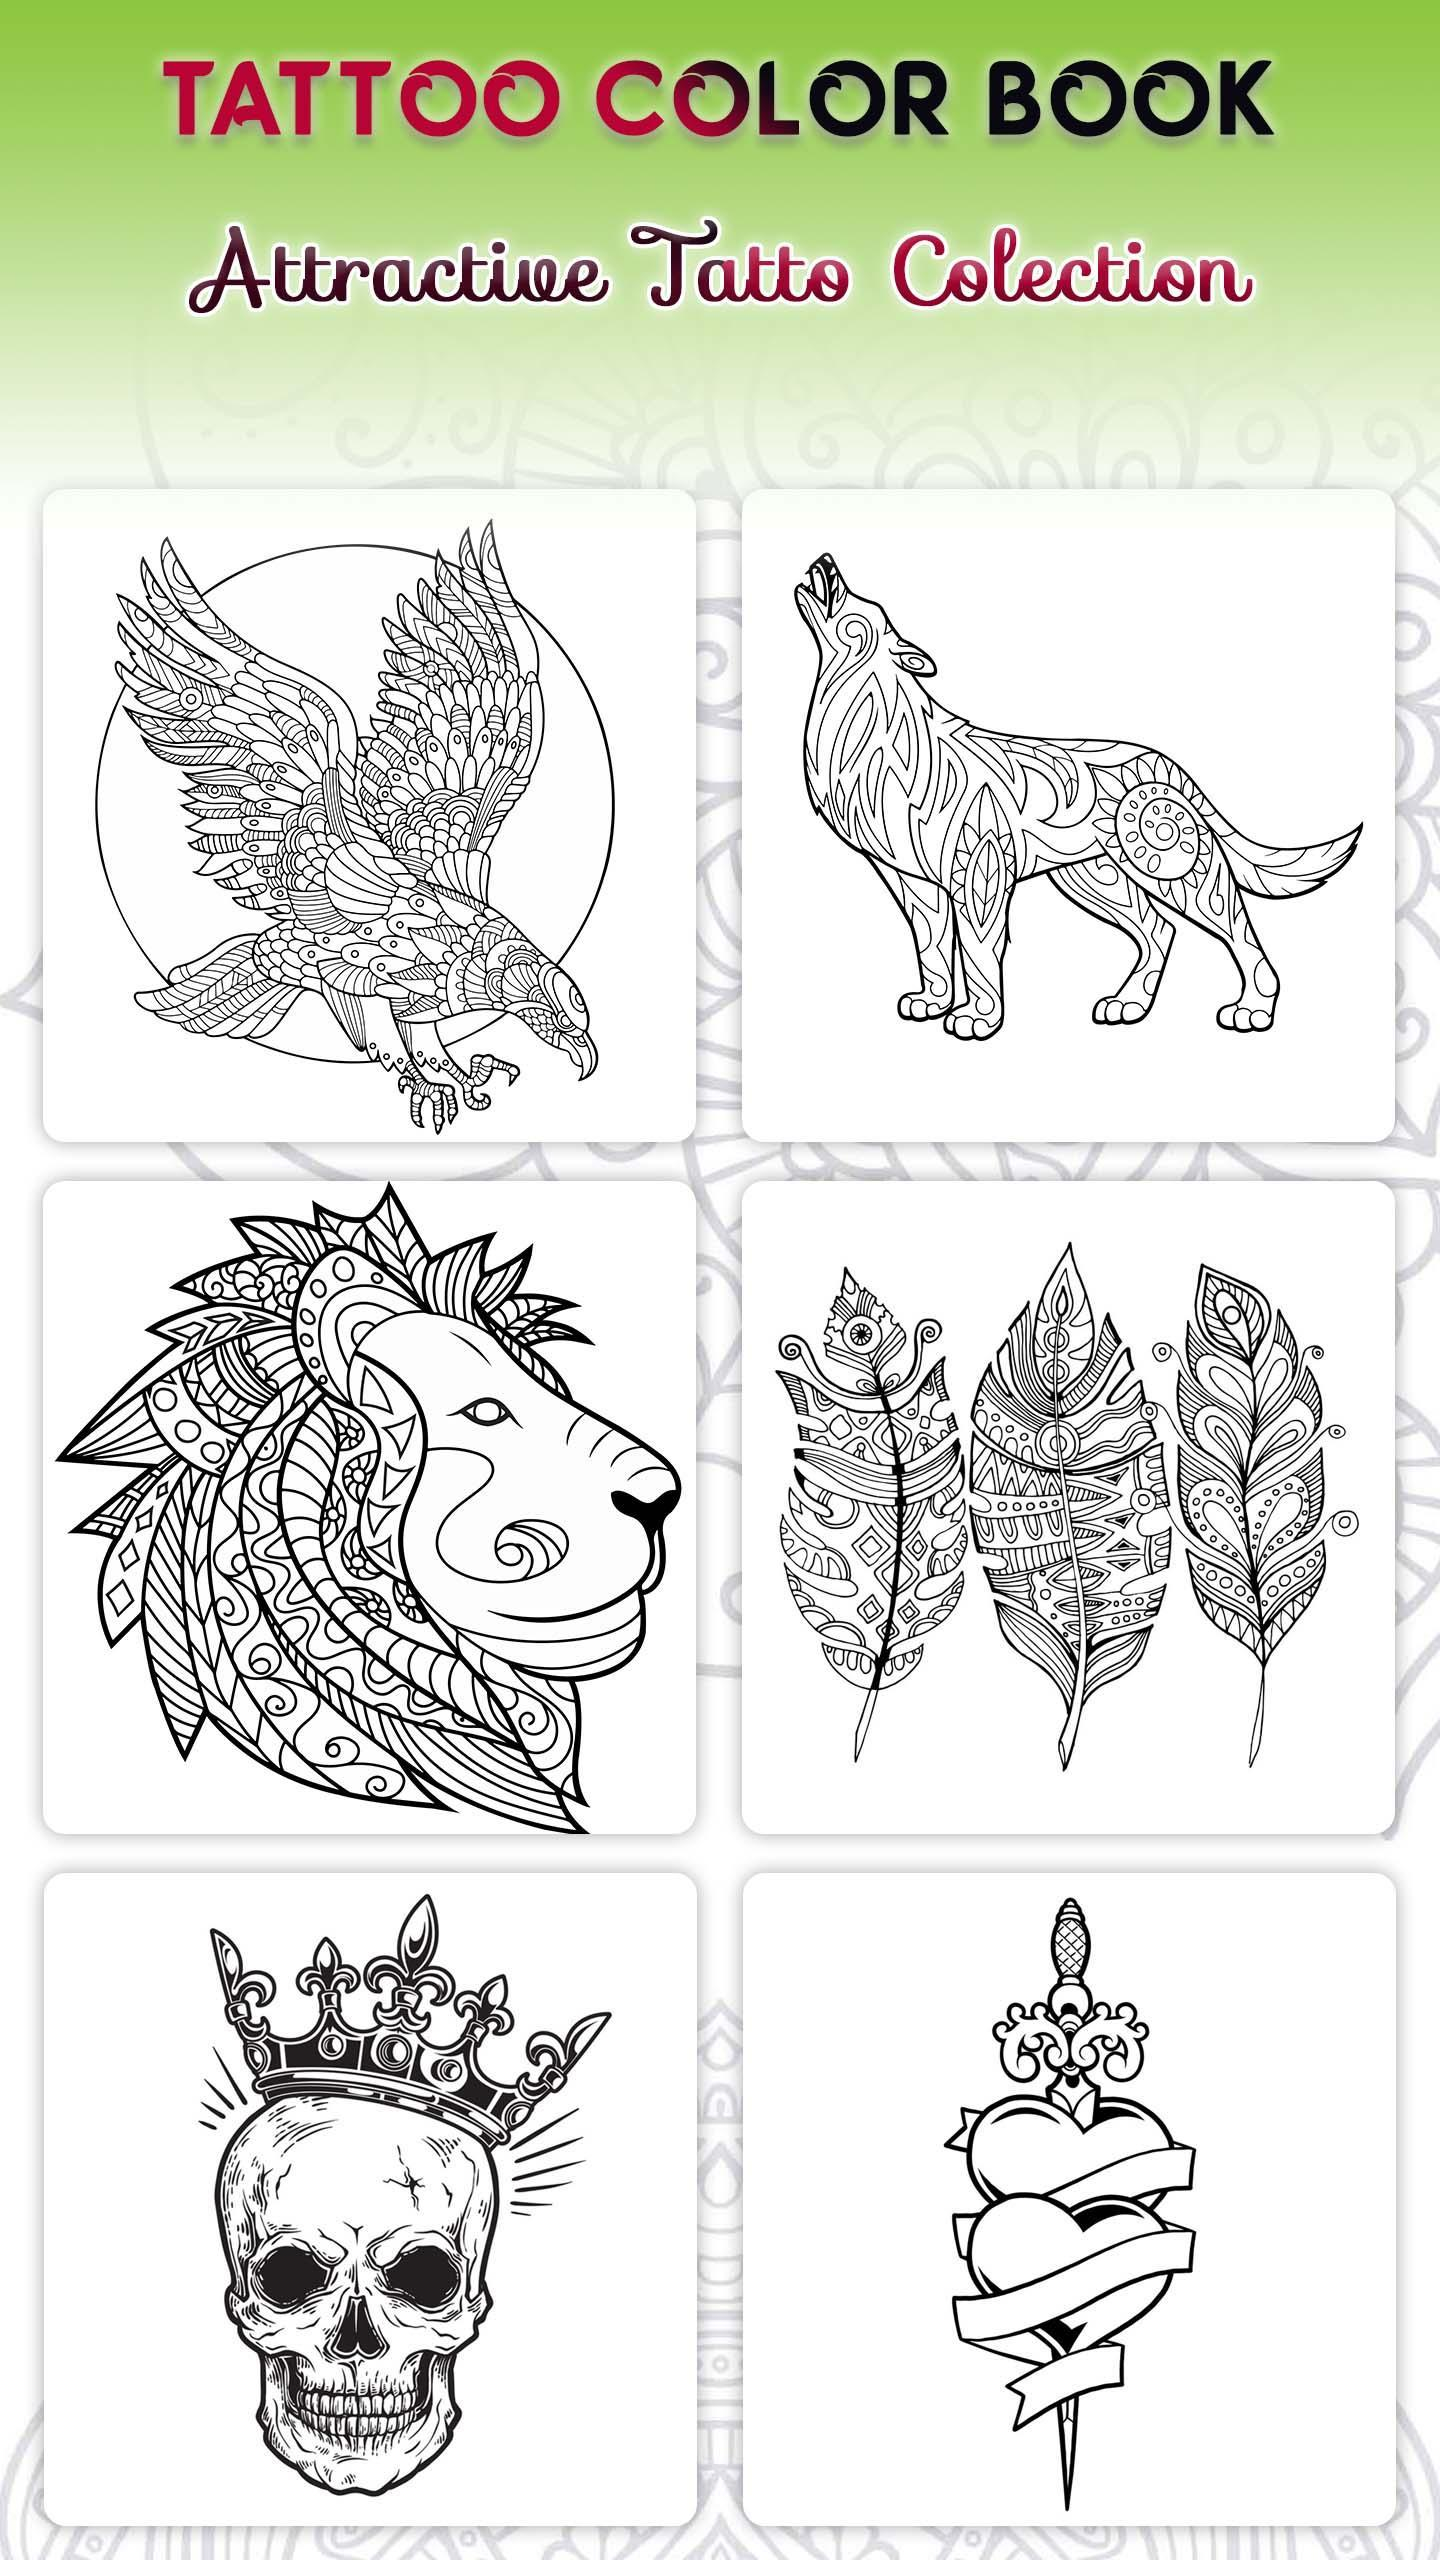 Tattoo Designs Coloring Book Free Coloring Game For Android Apk